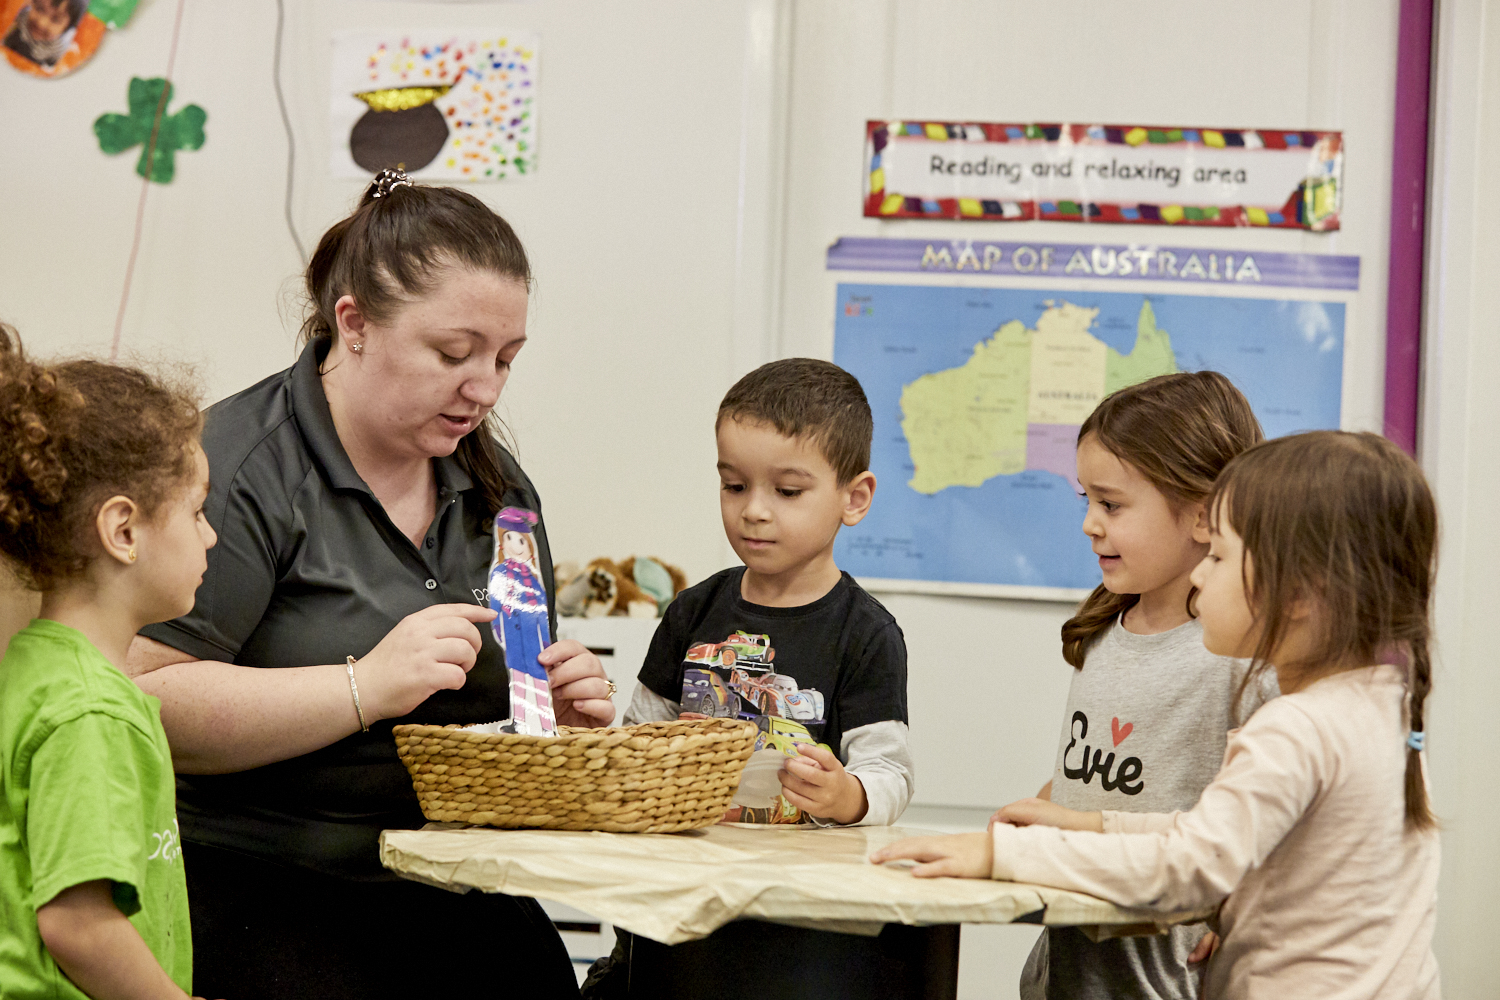 Child care educator with group of young children in child care classroom at Papilio Ryde